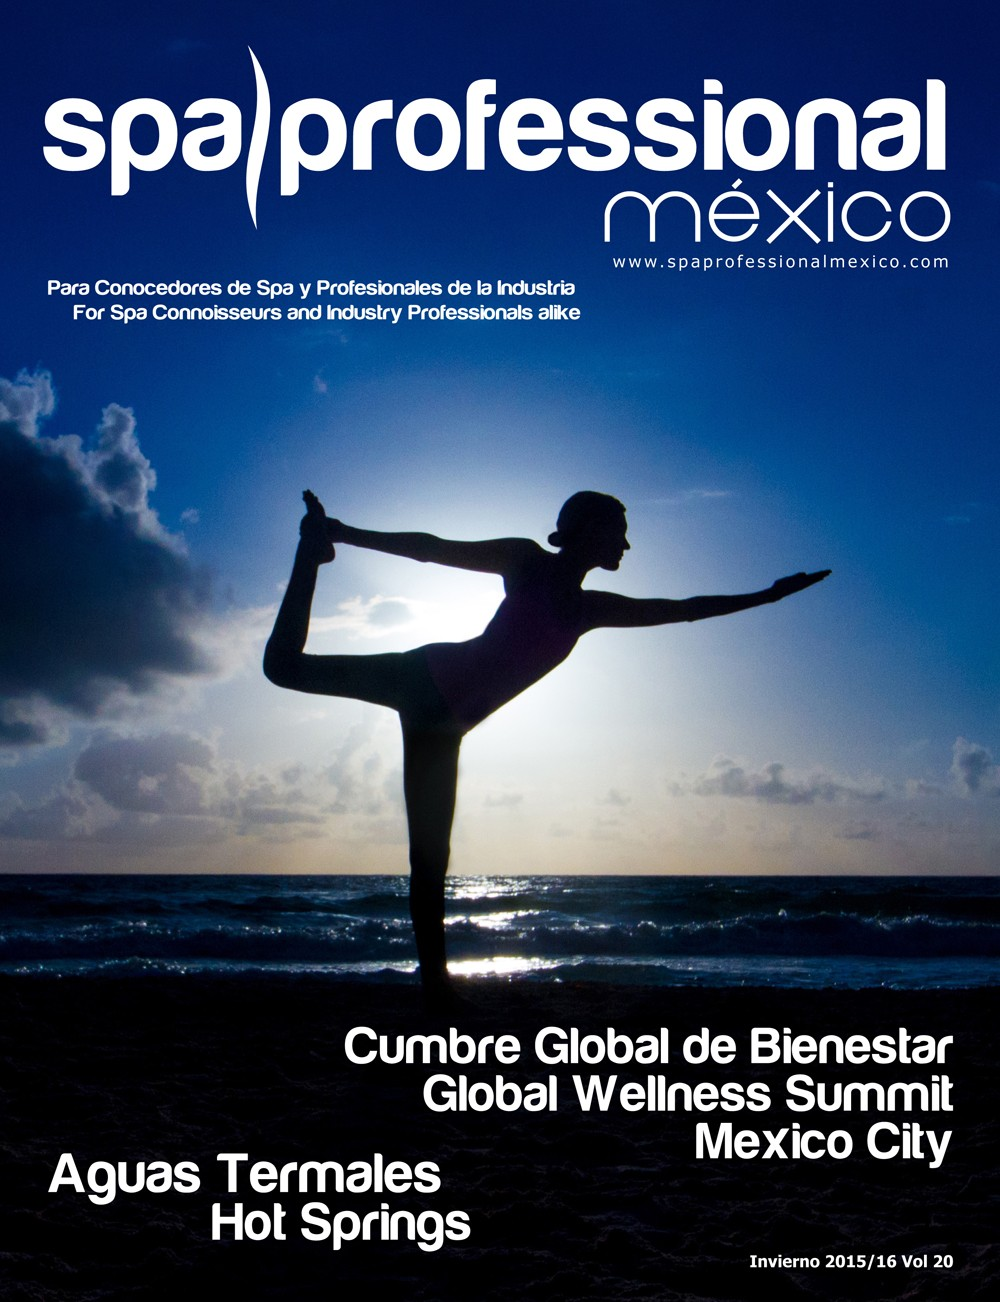 Spa Professional Mexico, Winter 2015/16